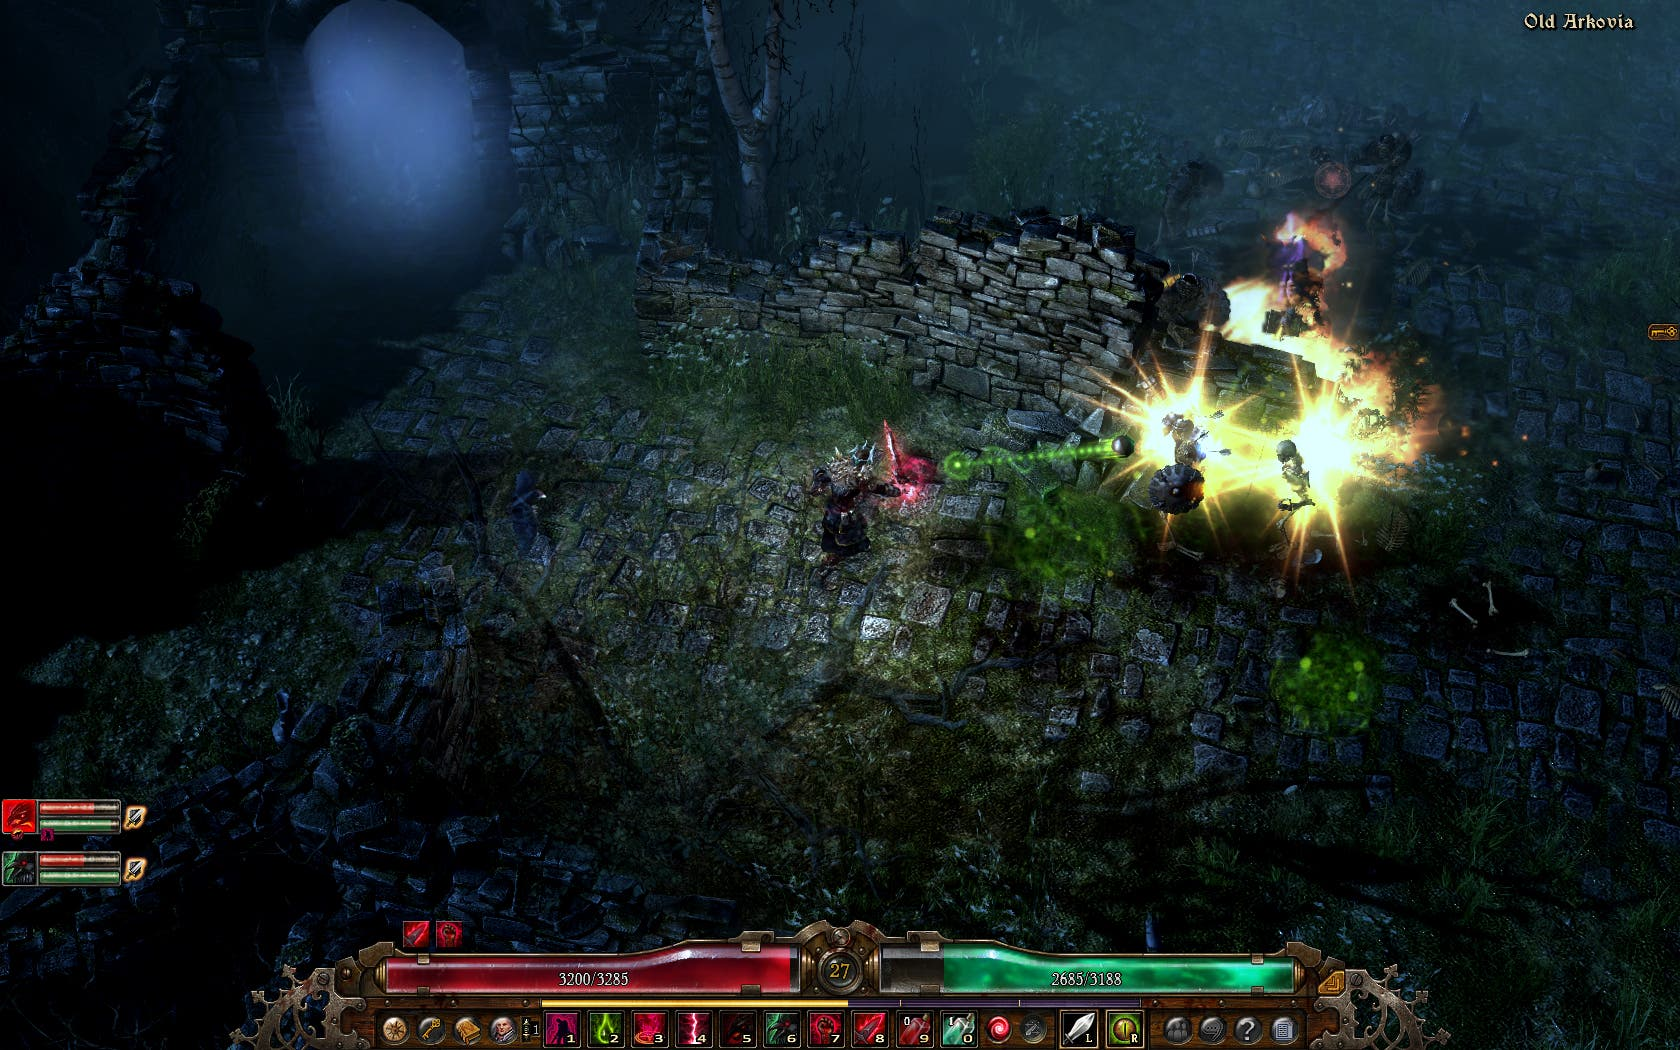 Grim Dawn updated to include Act II in Early Access - Saving